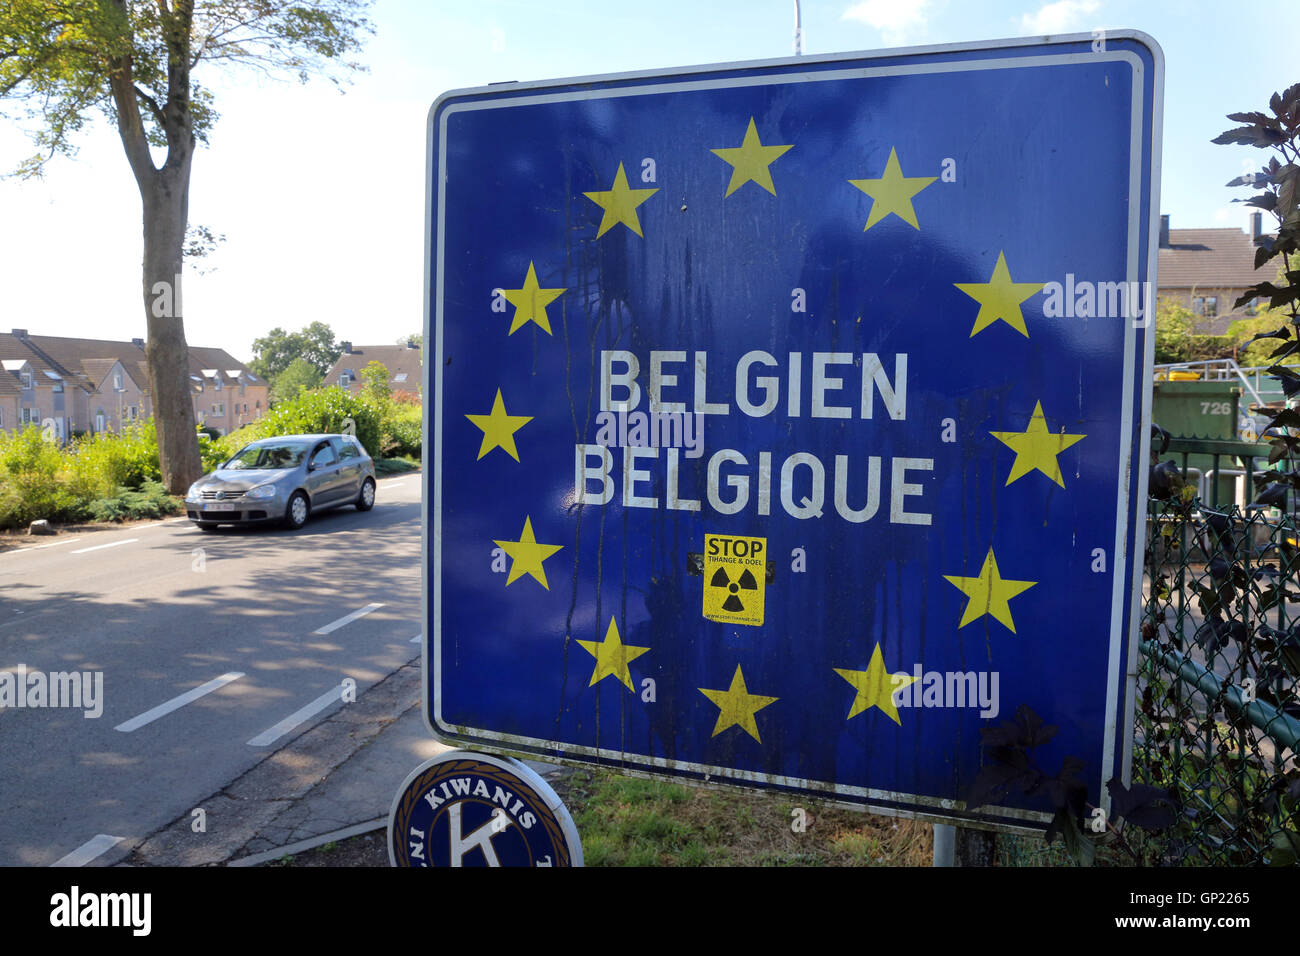 german border sign stockfotos german border sign bilder alamy. Black Bedroom Furniture Sets. Home Design Ideas